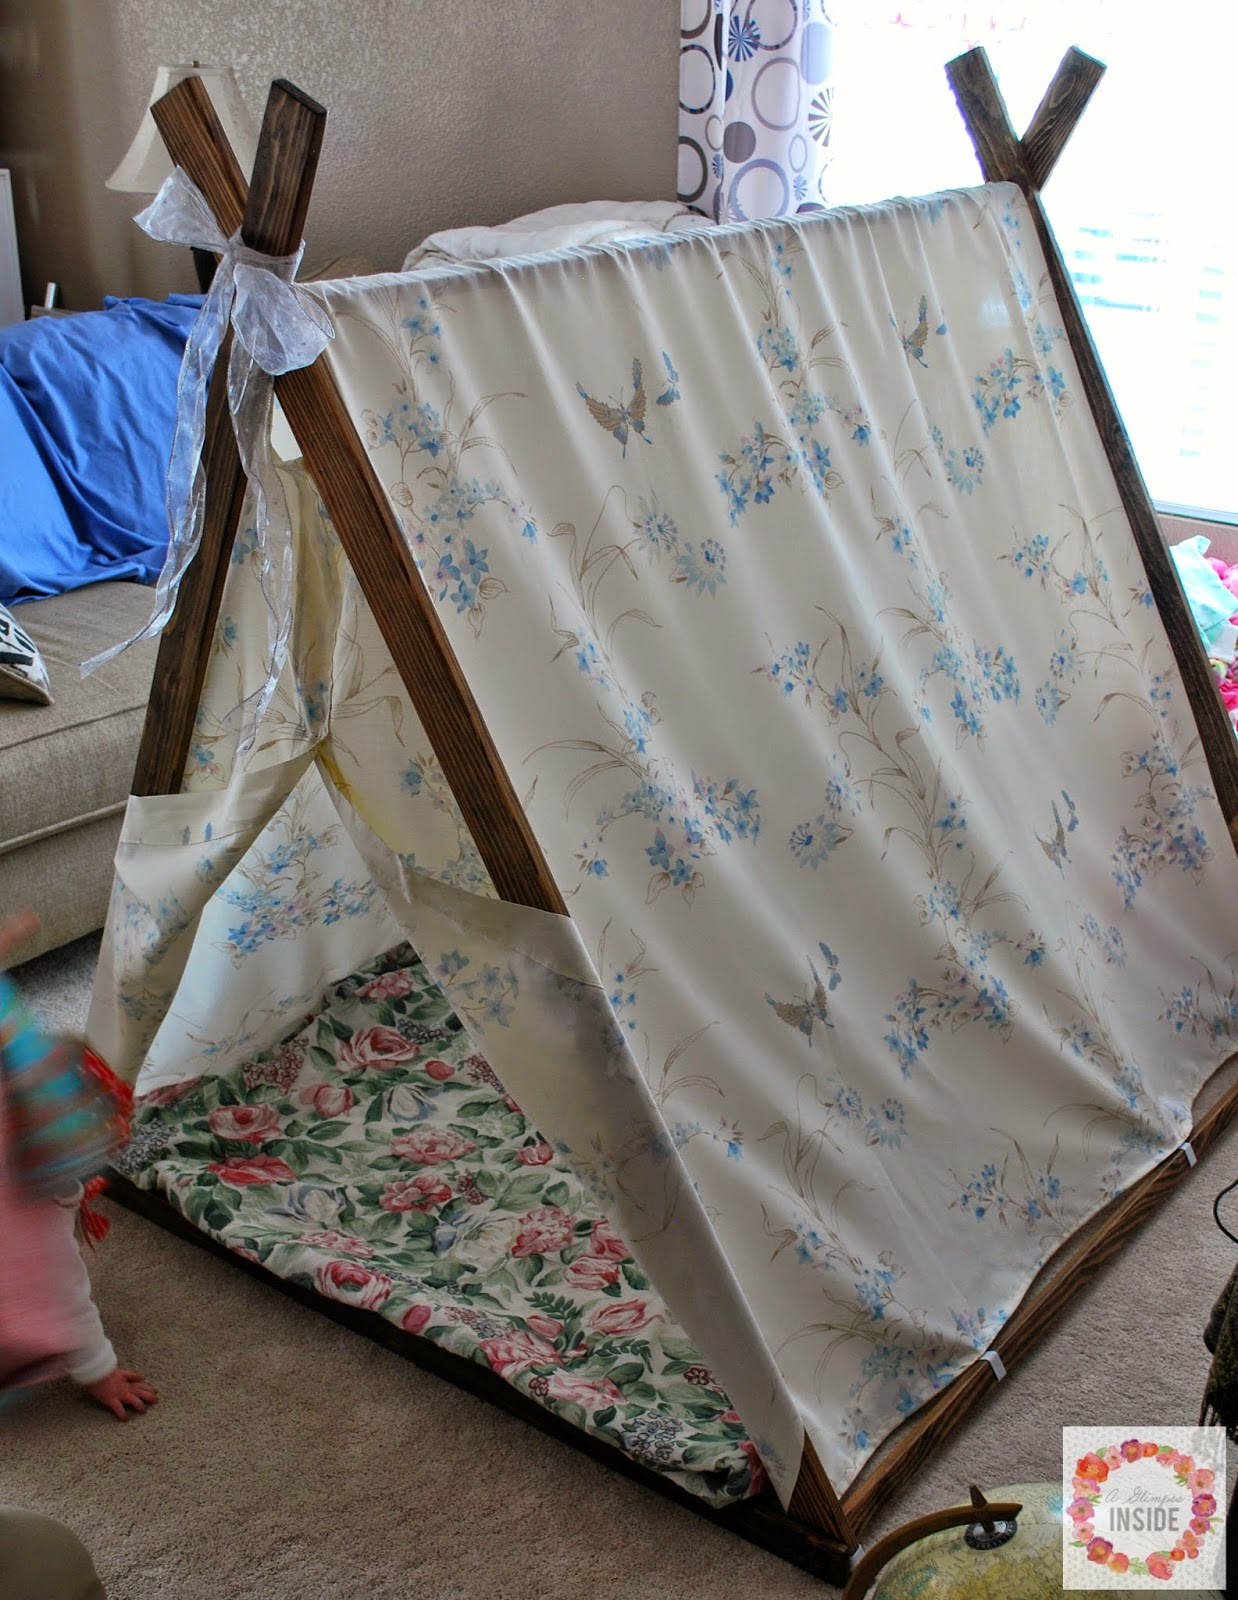 & A Glimpse Inside: DIY Play Tent